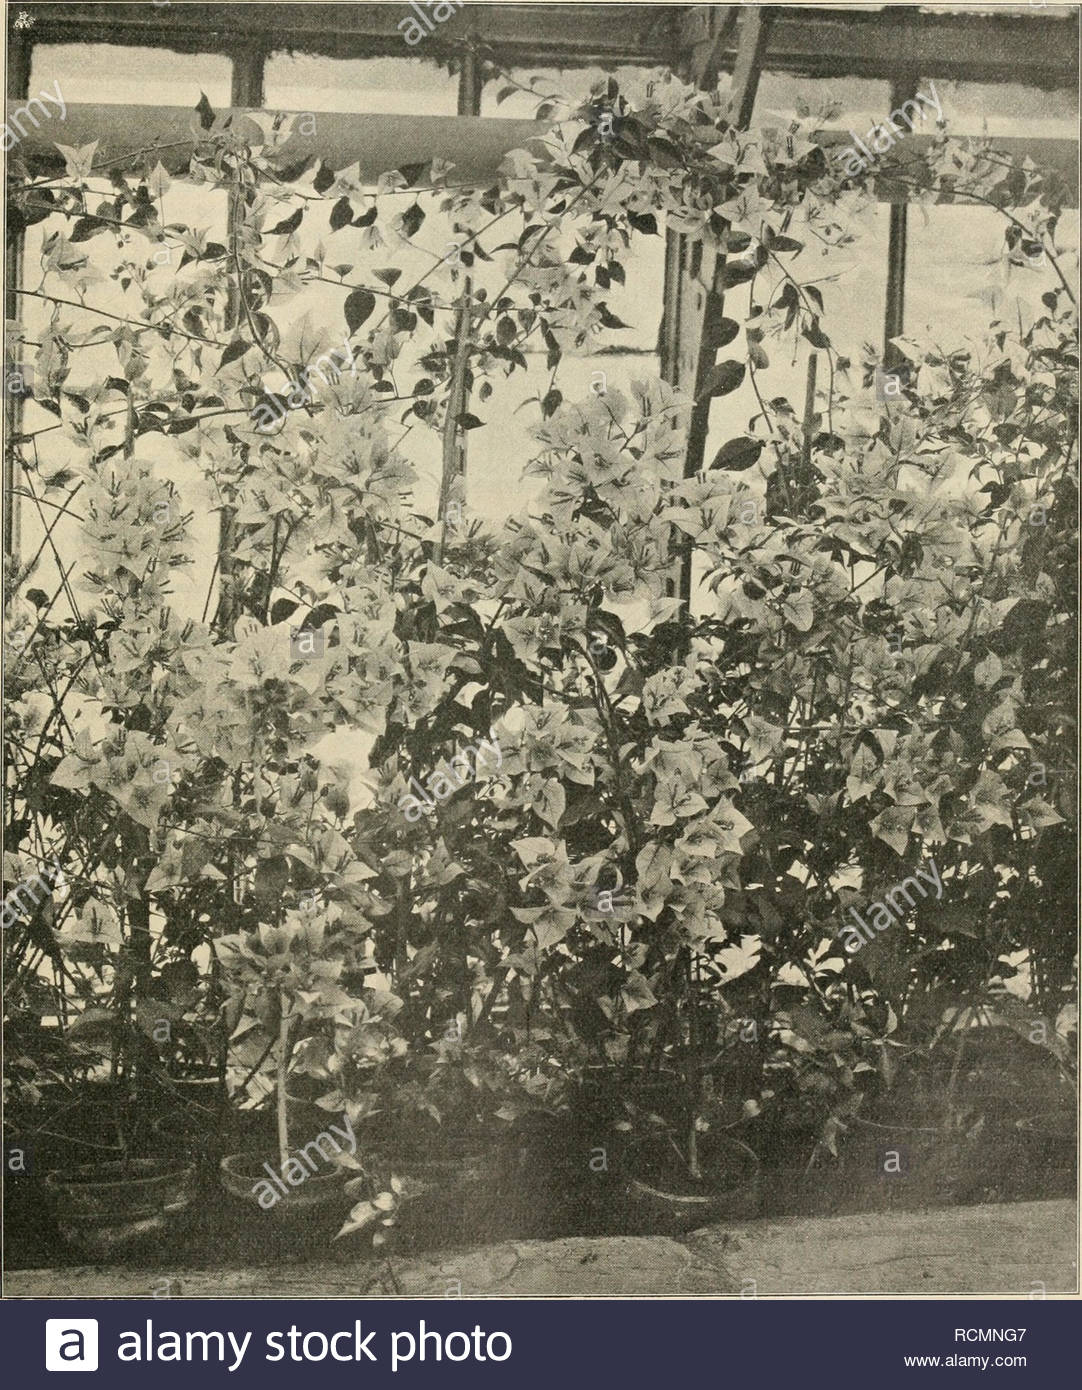 gartenwelt gardening v 14 gartenwolt irl teilansirht eines gewchshauses mit einjhrigen bougainvillea glabra sanderiana in der groh hofgrtnerei rosenhohe bei iarni4idt originalaufnahme fr gartenwelt please note that these images are extracted from scanned page images that may have been digitally enhanced for readability coloration and appearance of these illustrations may not perfectly resemble the original work berlin g schmidt RCMNG7